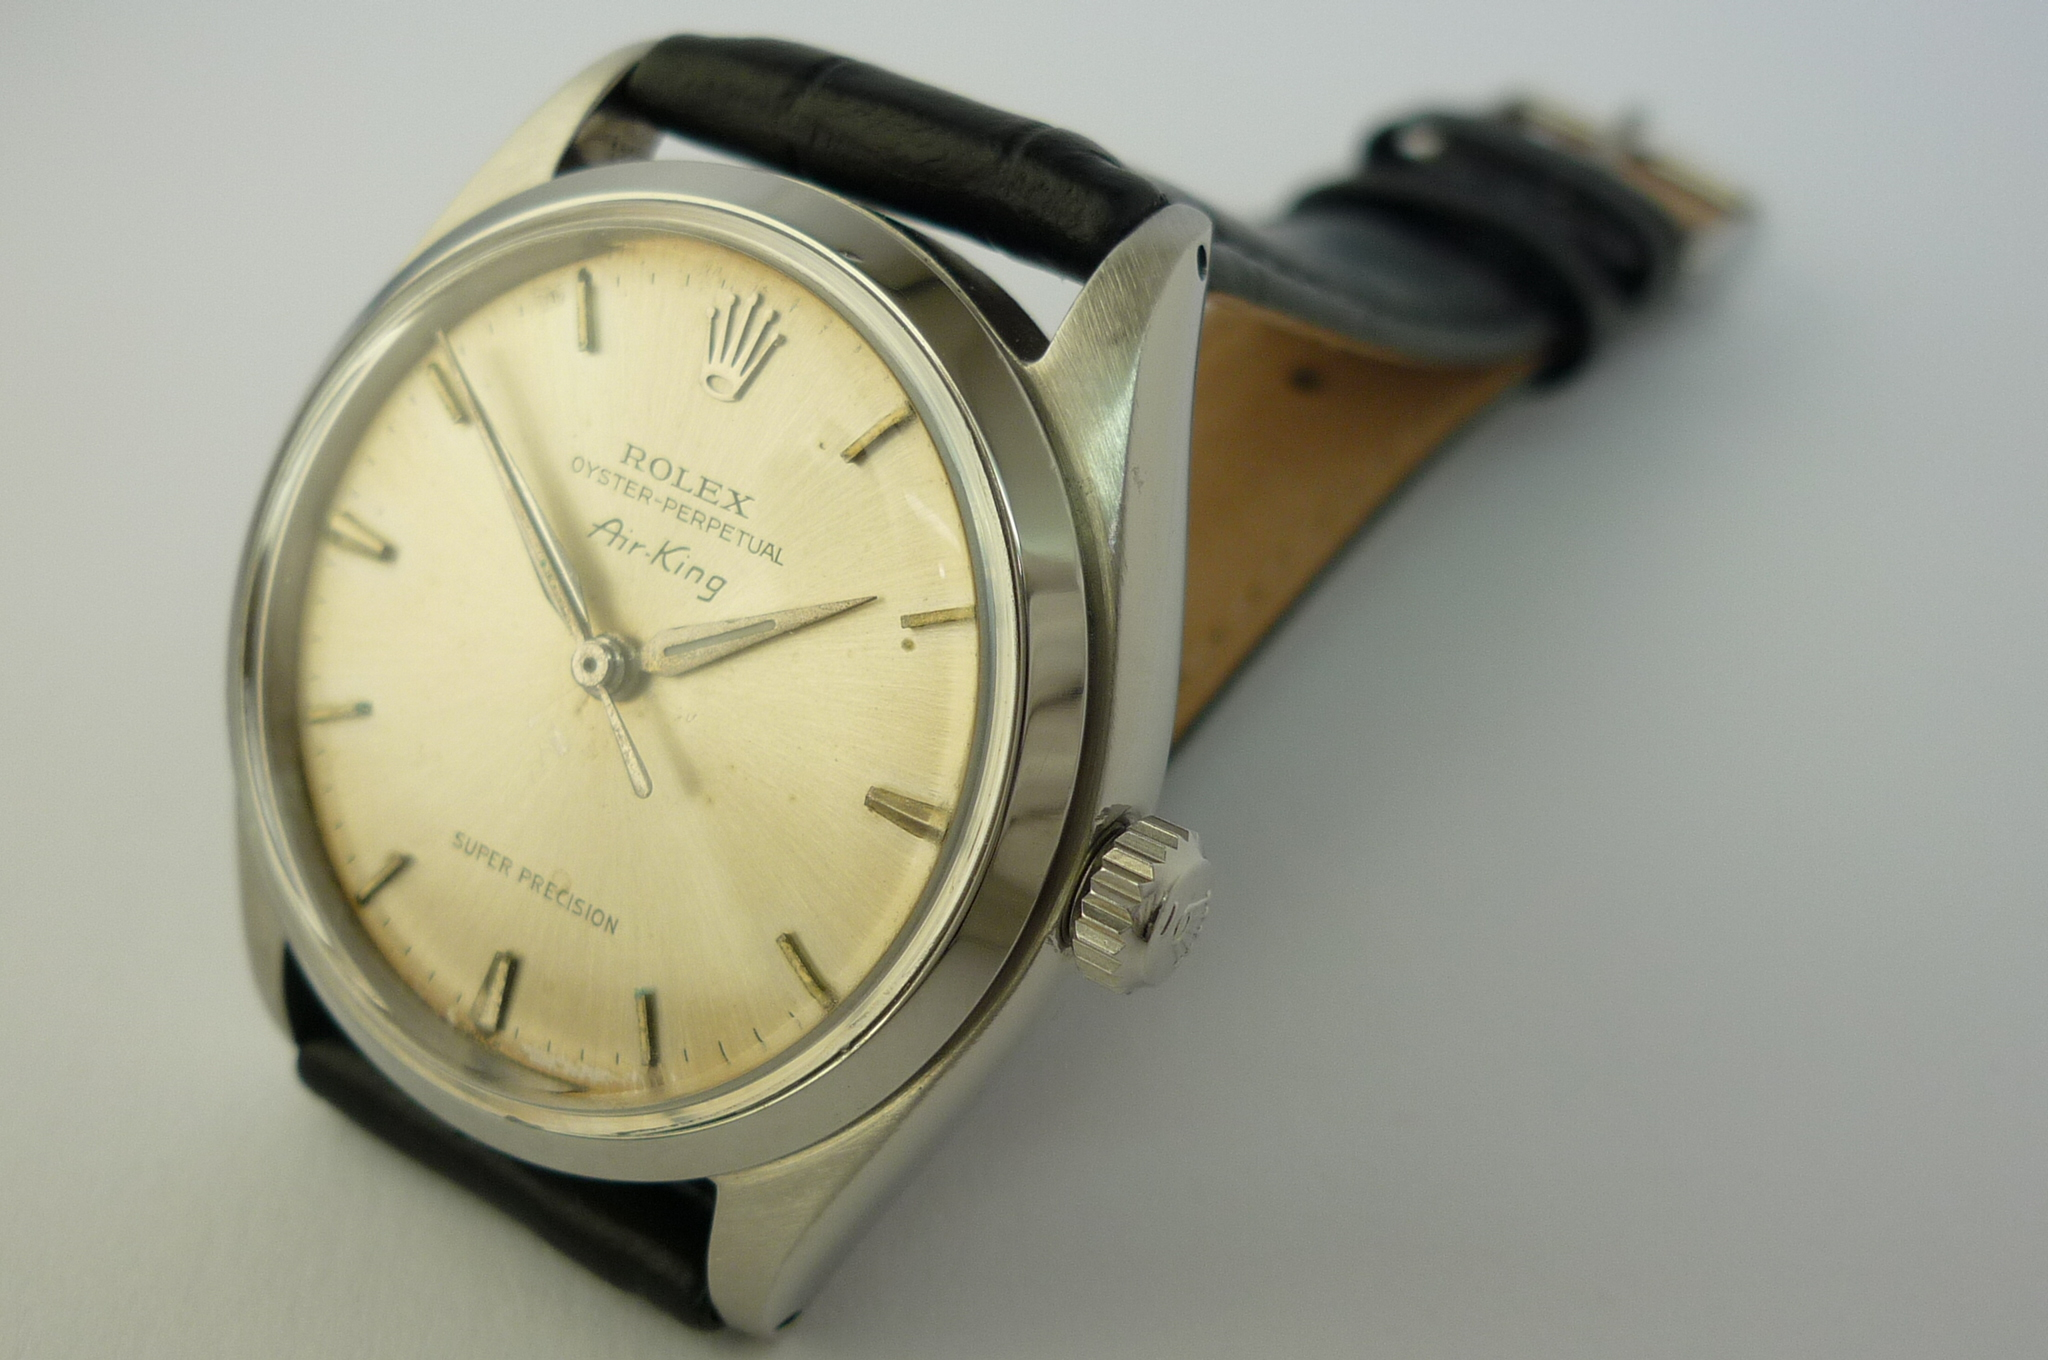 Rolex Oyster Perpetual Air king 5500 (1962)